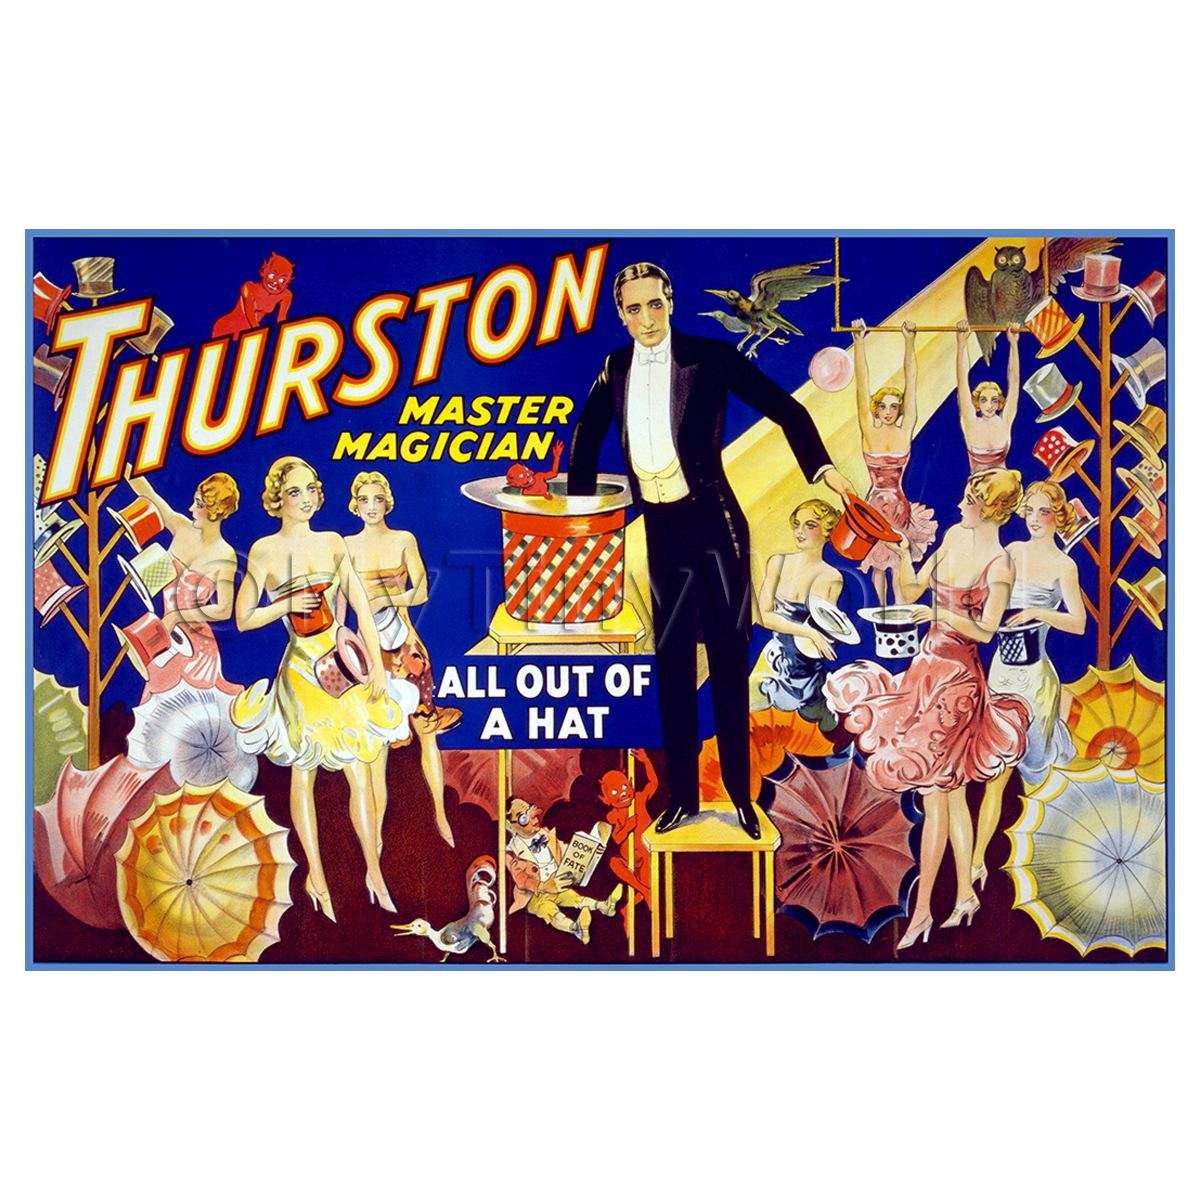 Dolls House Miniature Thurston Magic Poster - All Out Of A Hat